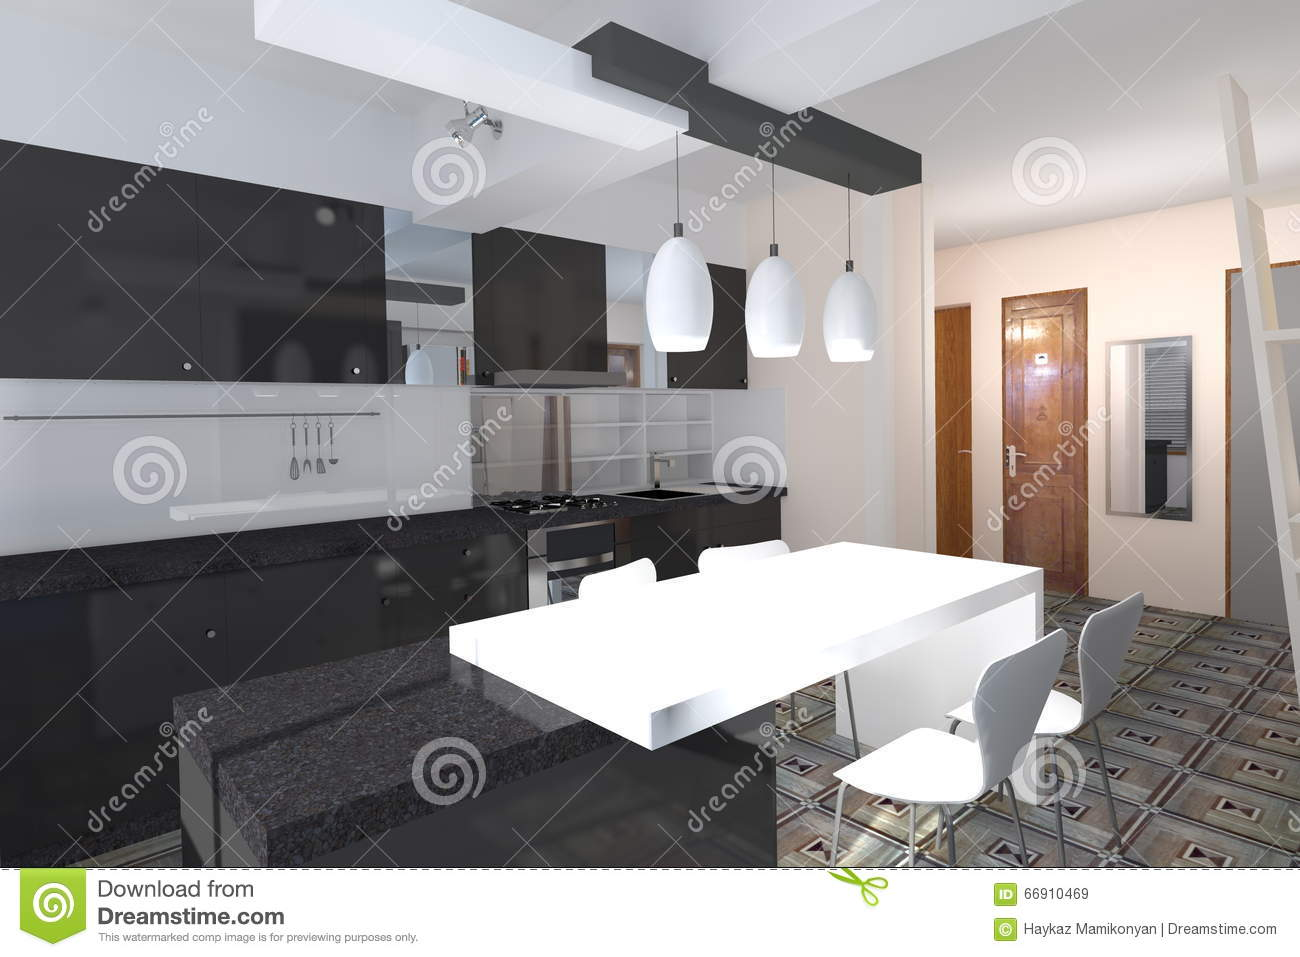 Kitchen design stock illustration  Illustration of